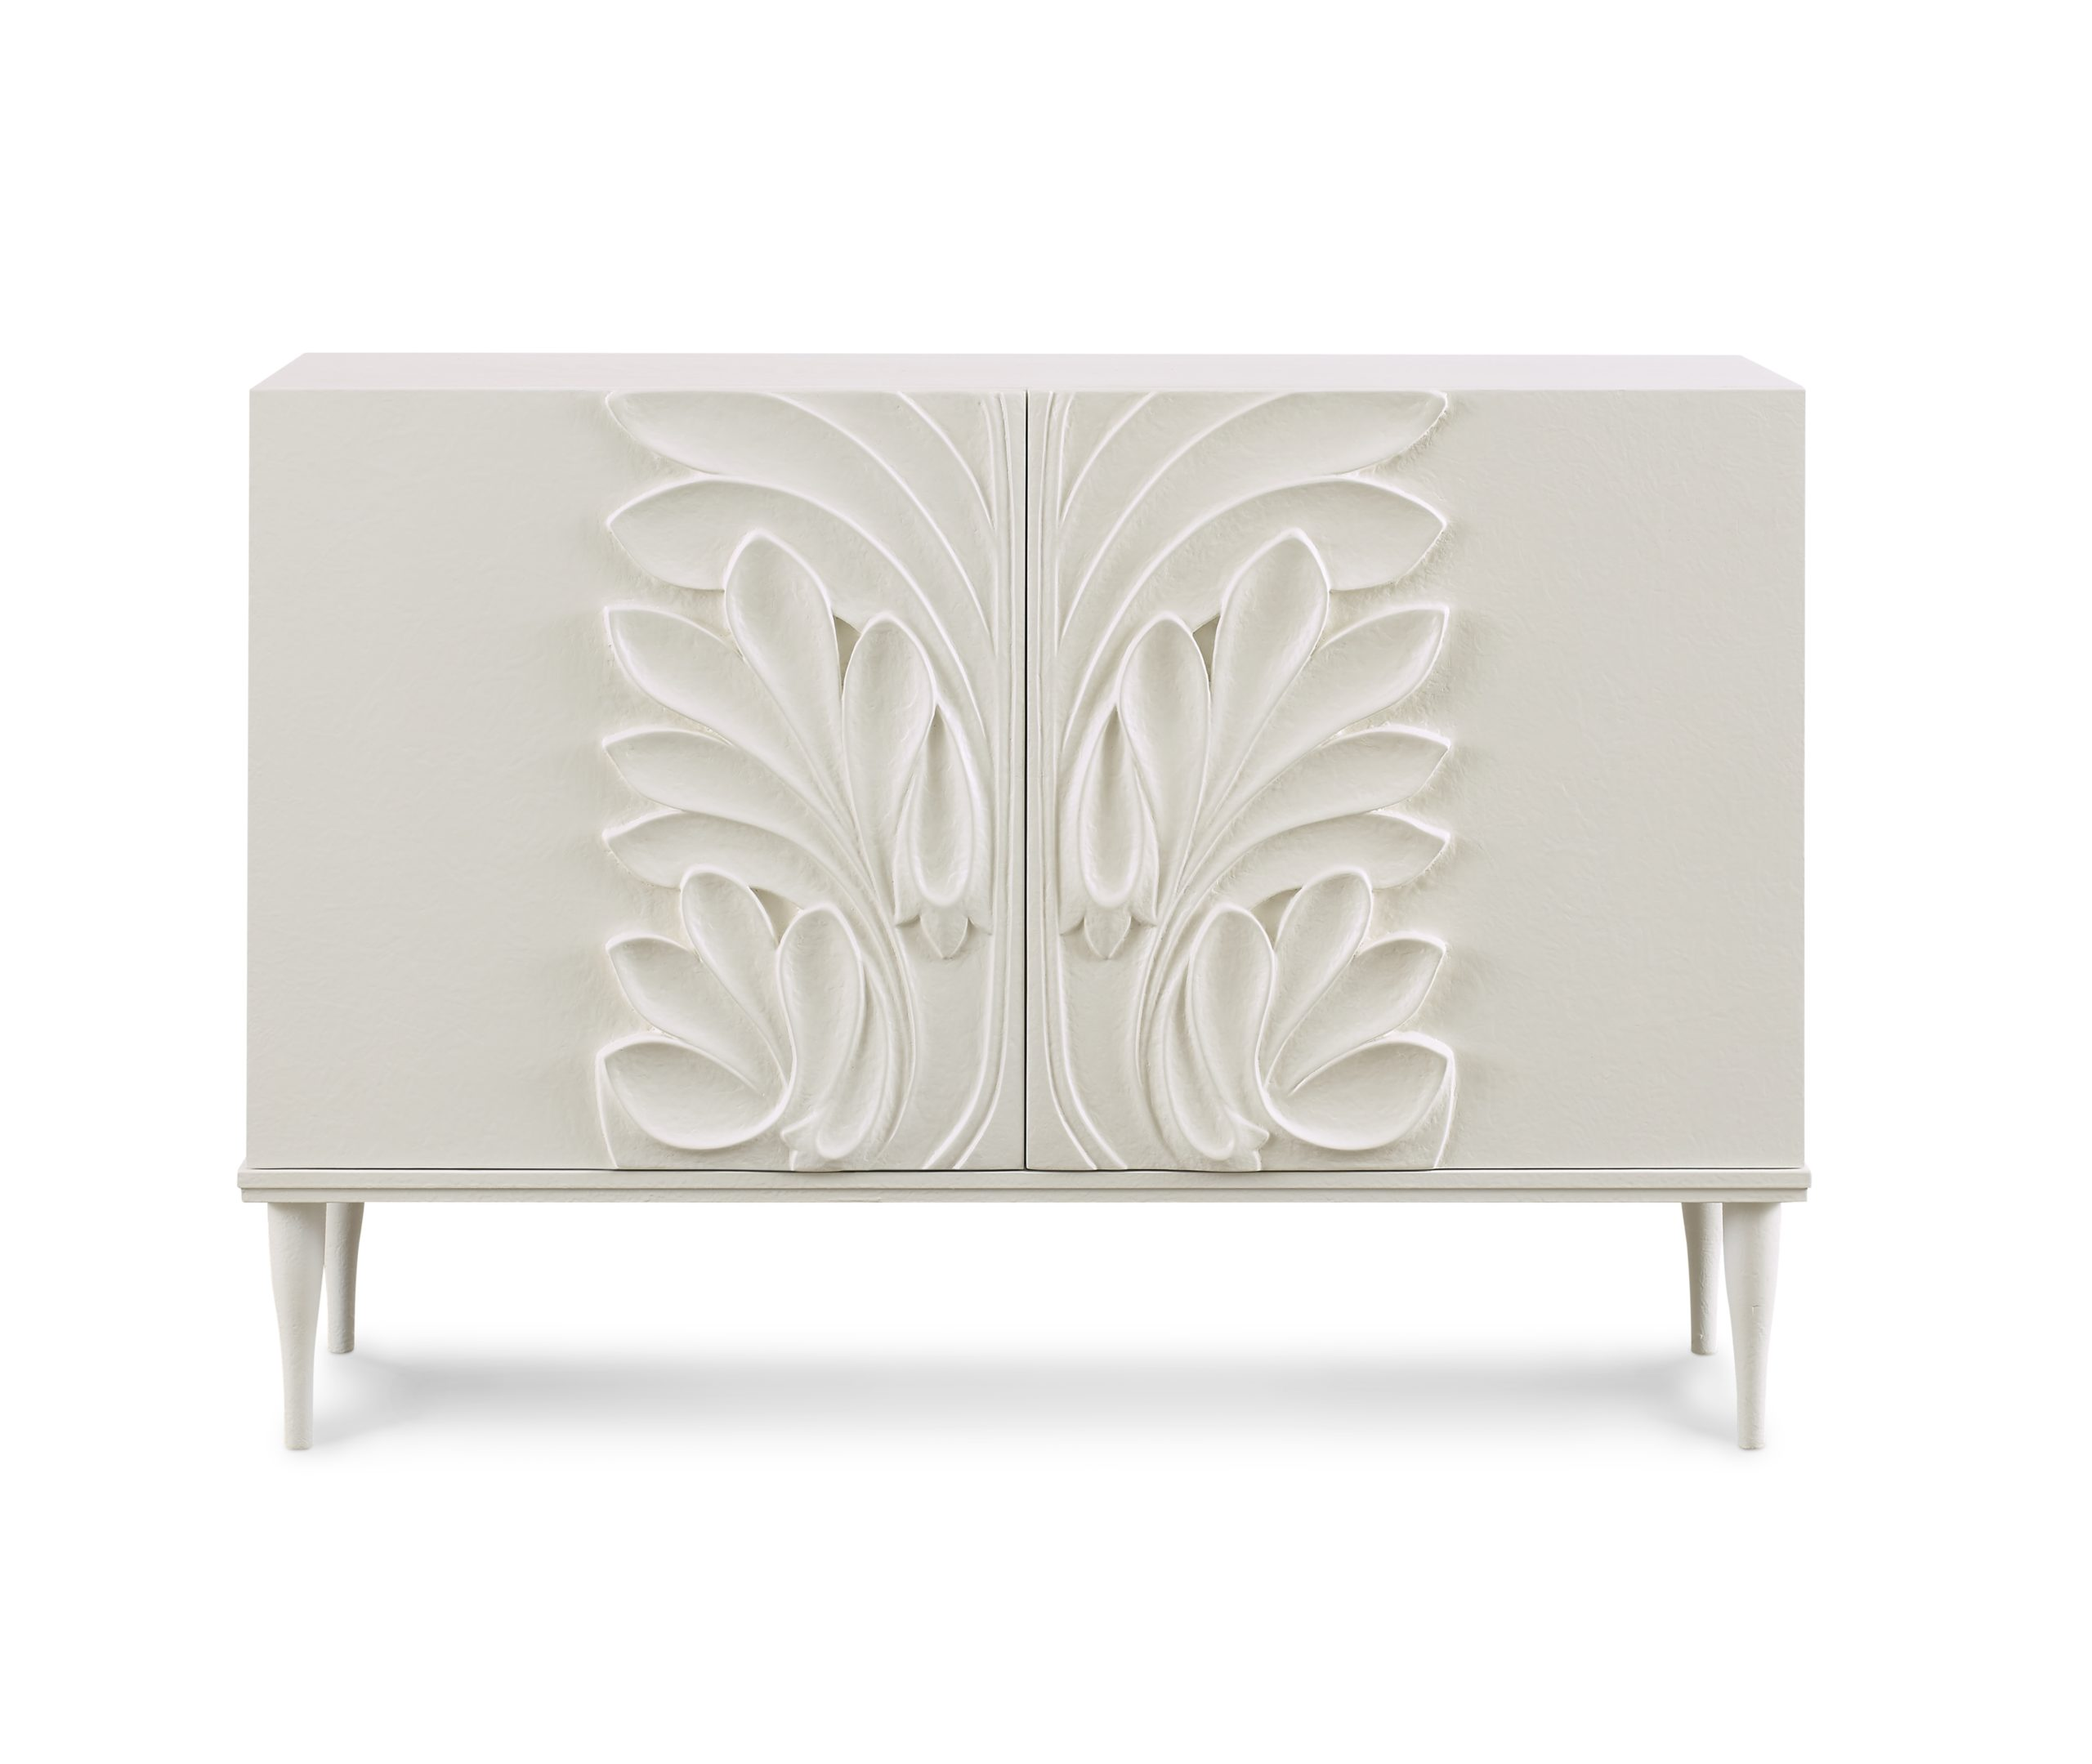 Baker_products_WNWN_jardin_chest_BAA3229_FRONT-scaled-2